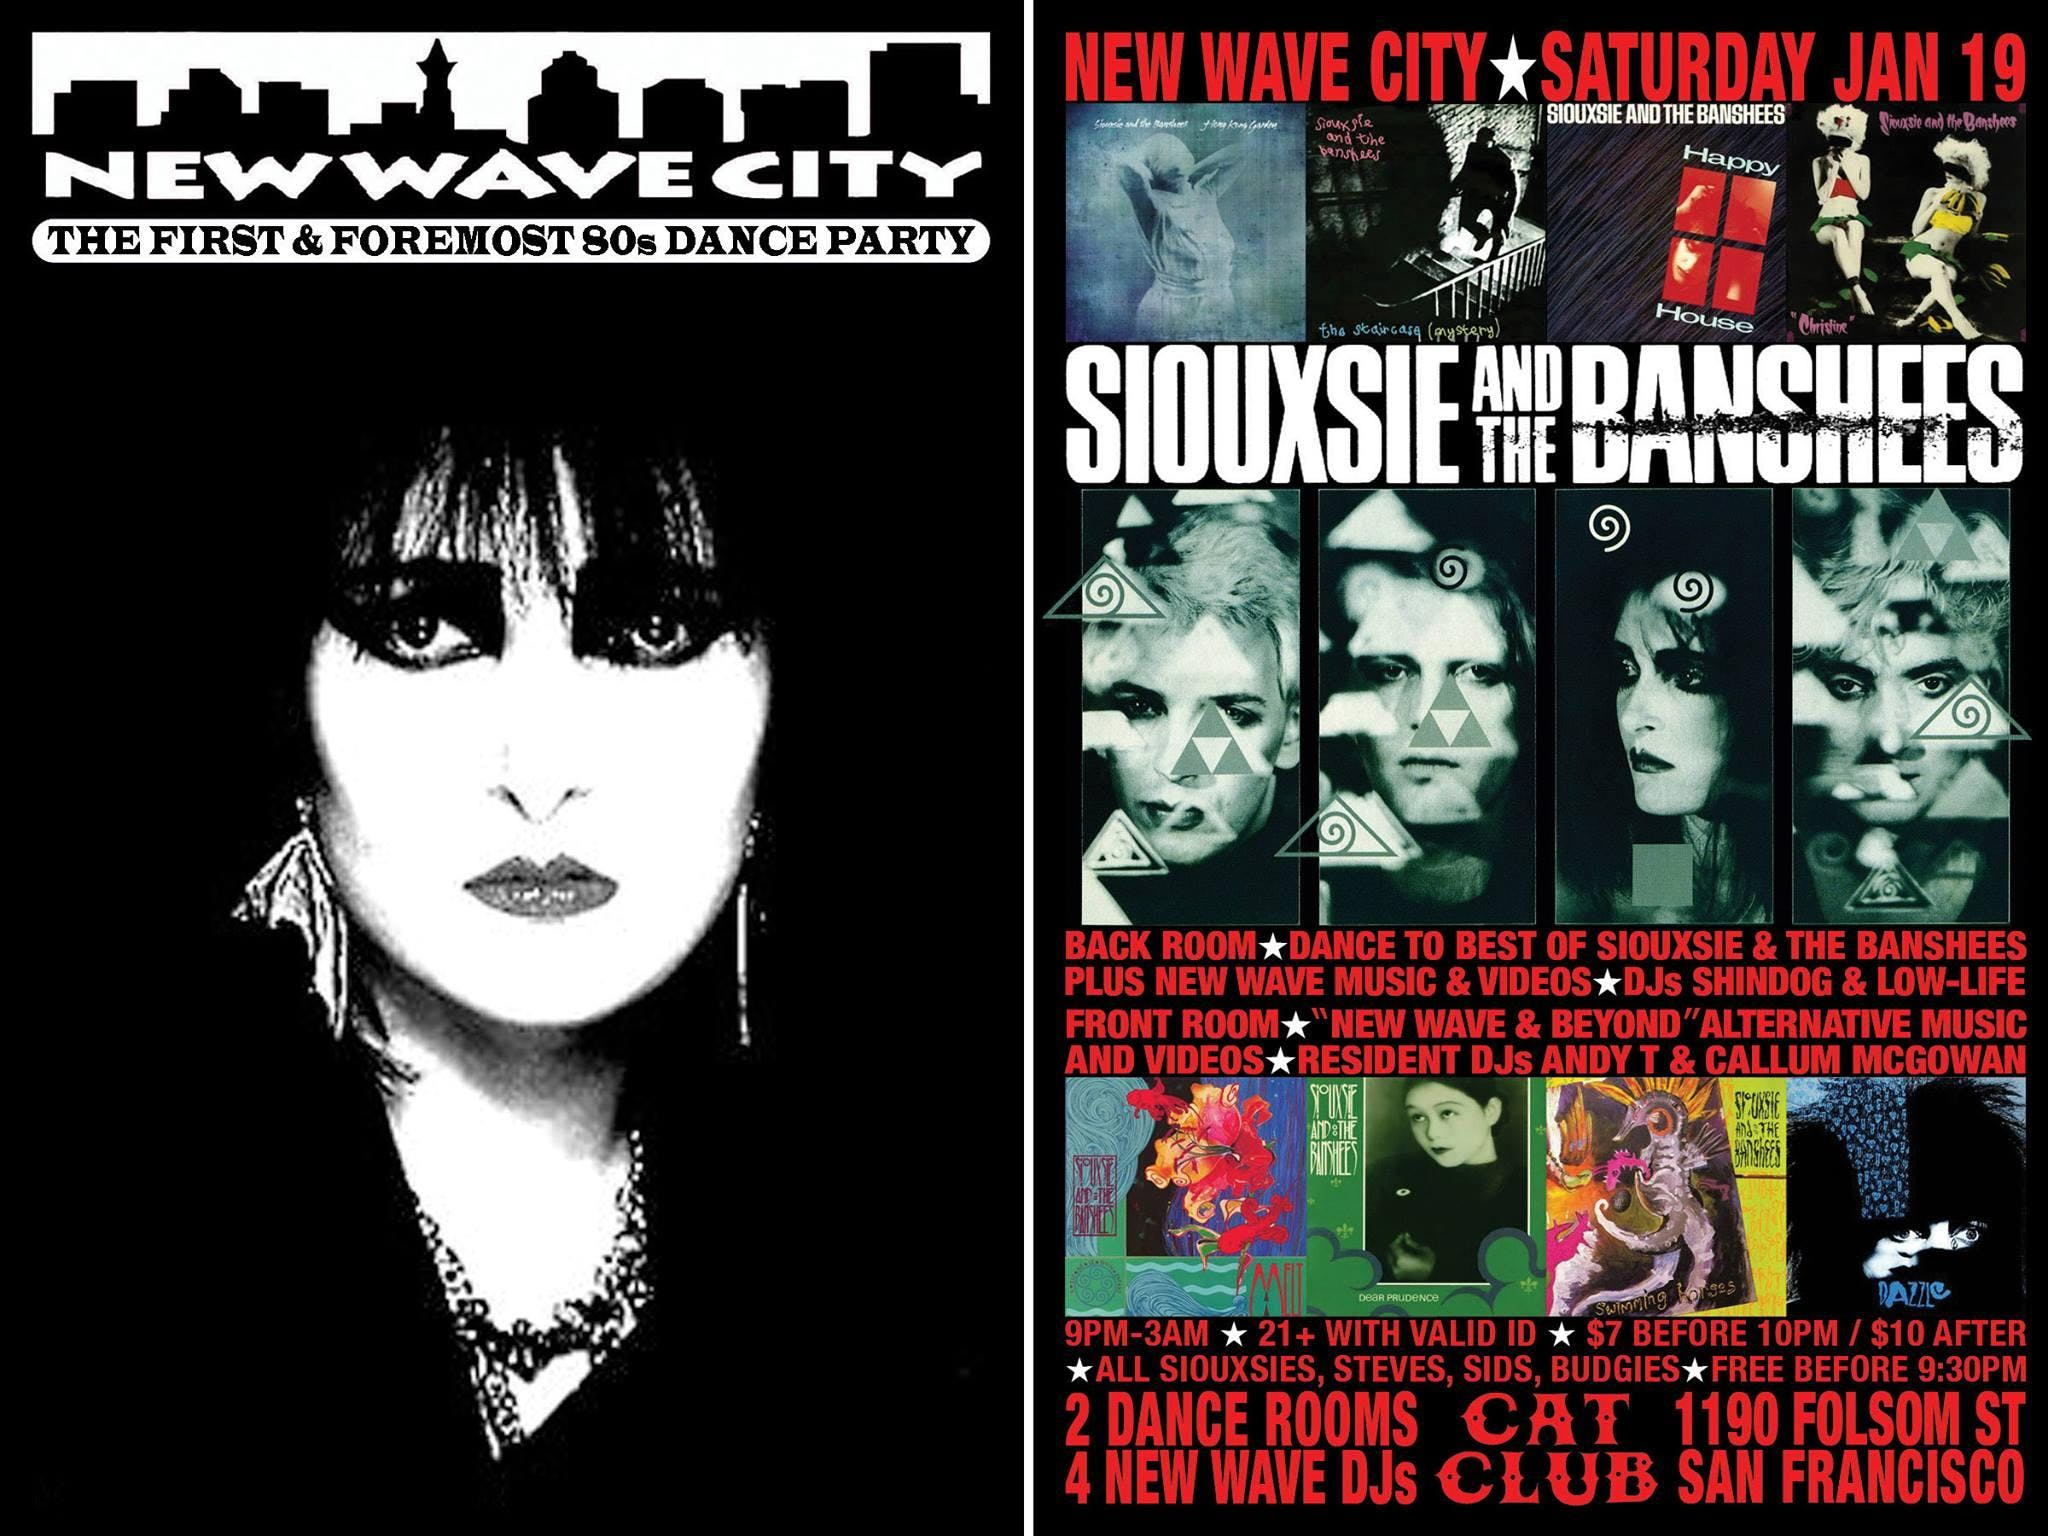 2 For 1 Admission To Siouxsie Night Jan 19 20 Jan 2019